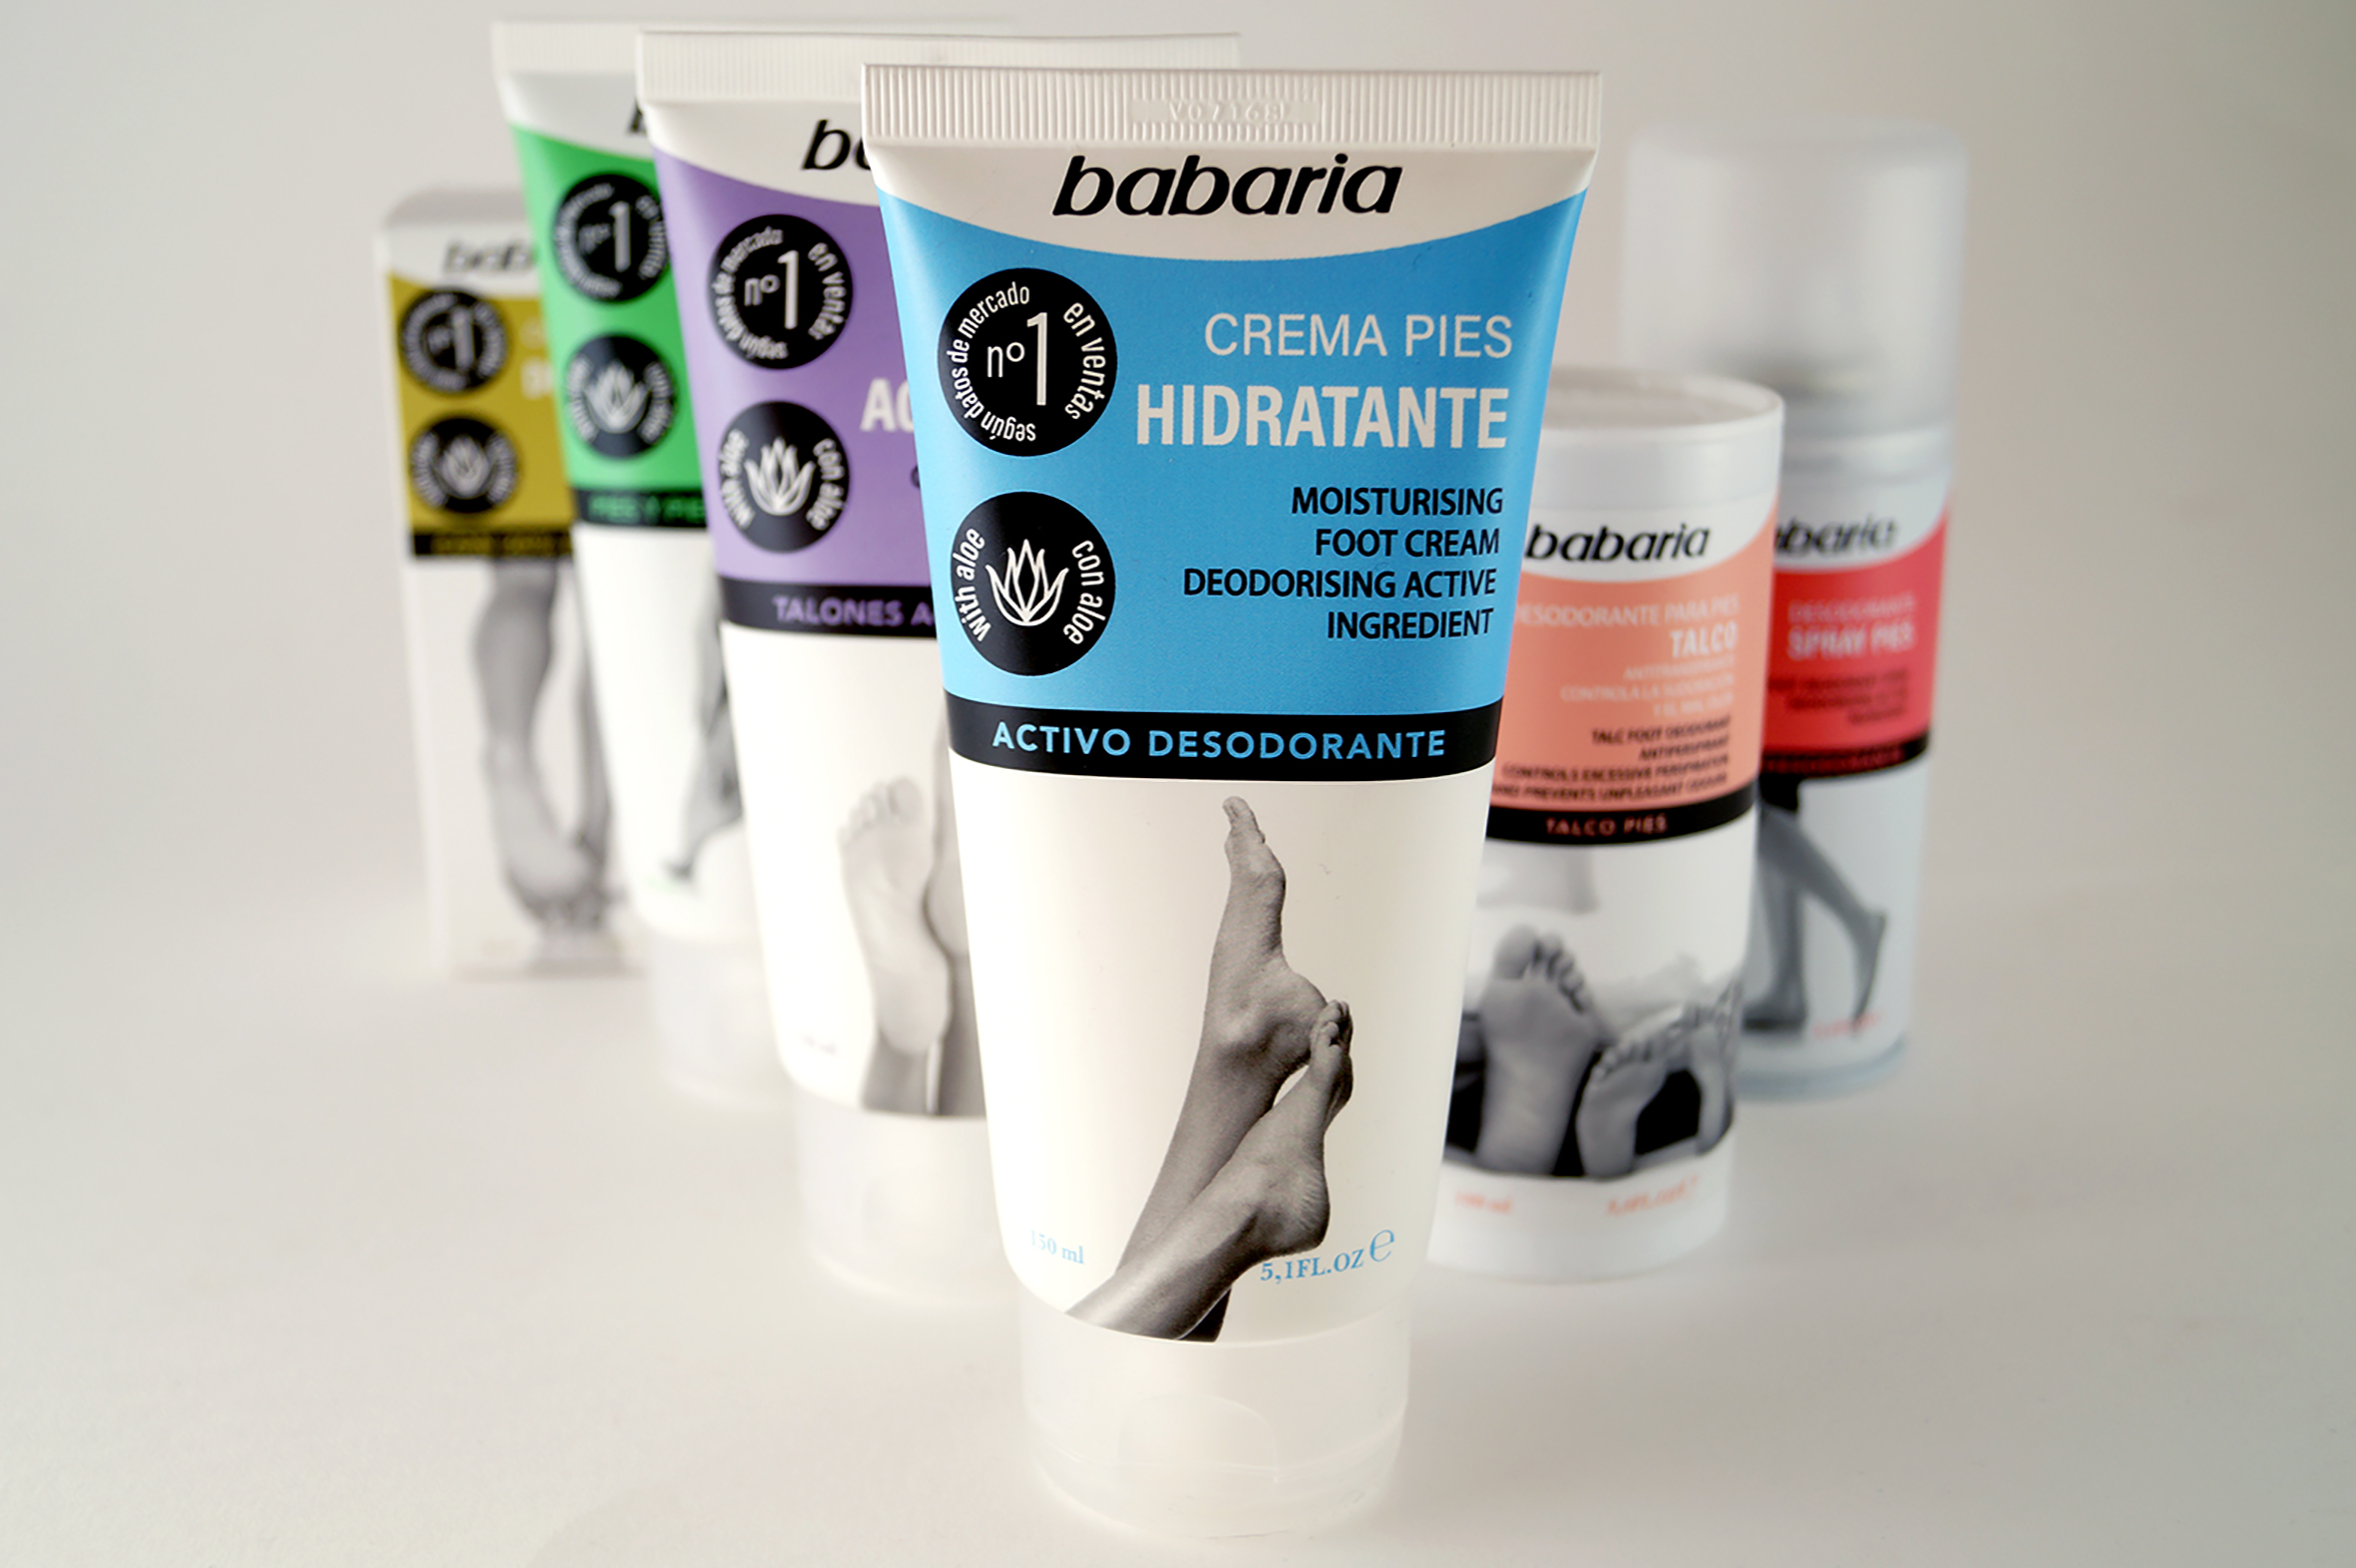 Magic Mirror Design Create Brand and Packaging Design for Babaria Feet Care Range